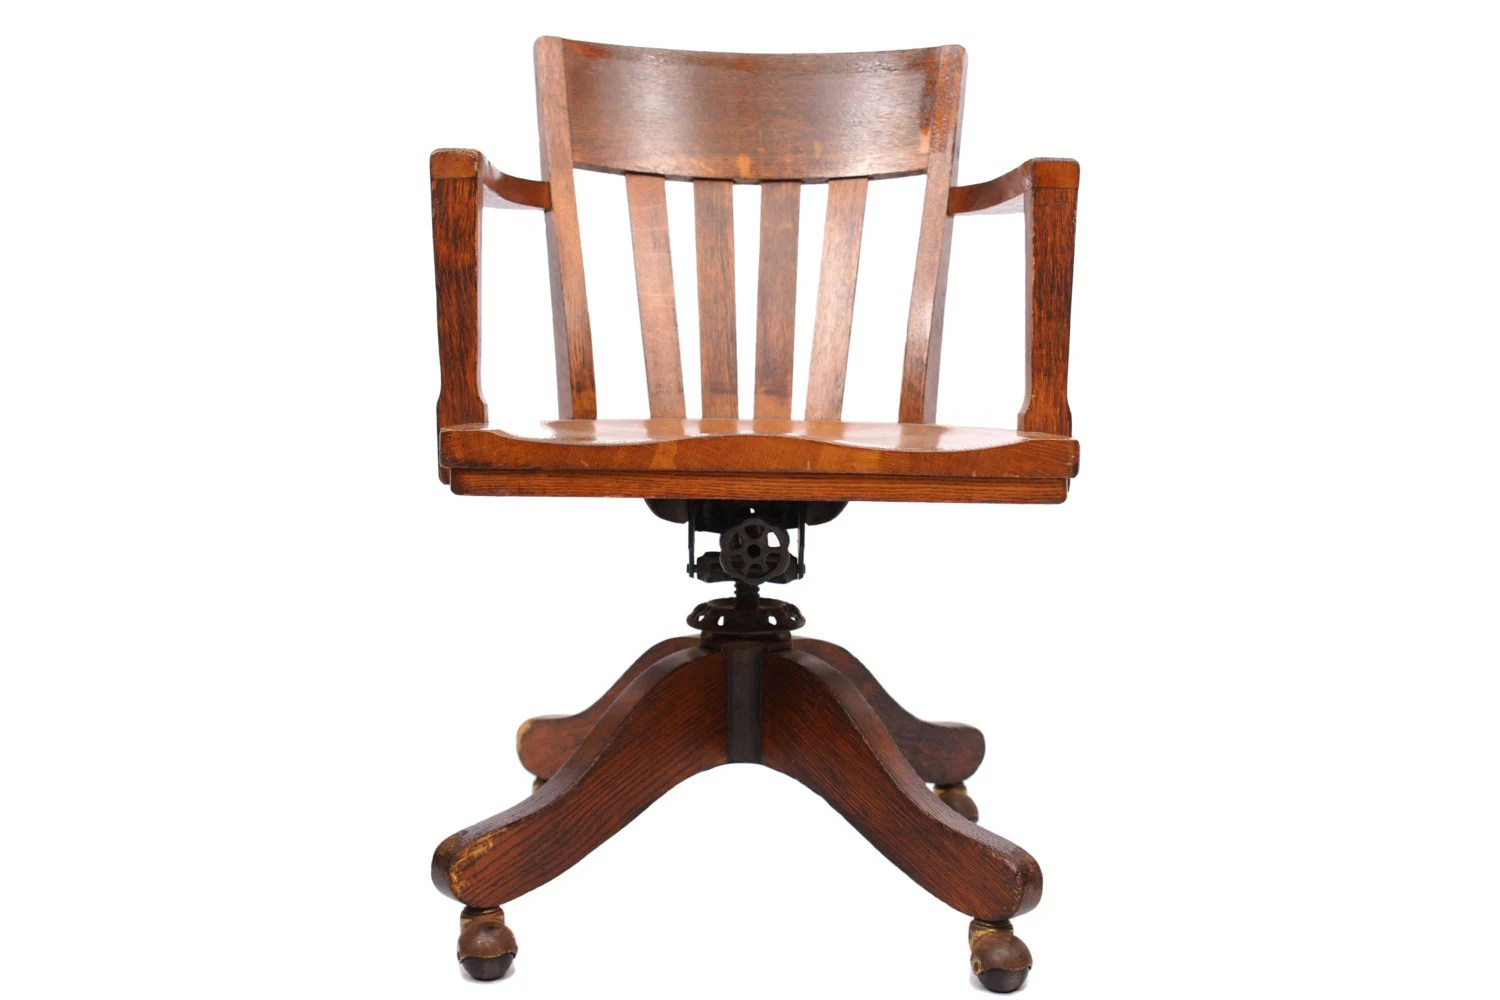 sikes chair company ethan allen club chairs antique office oak and iron swivel